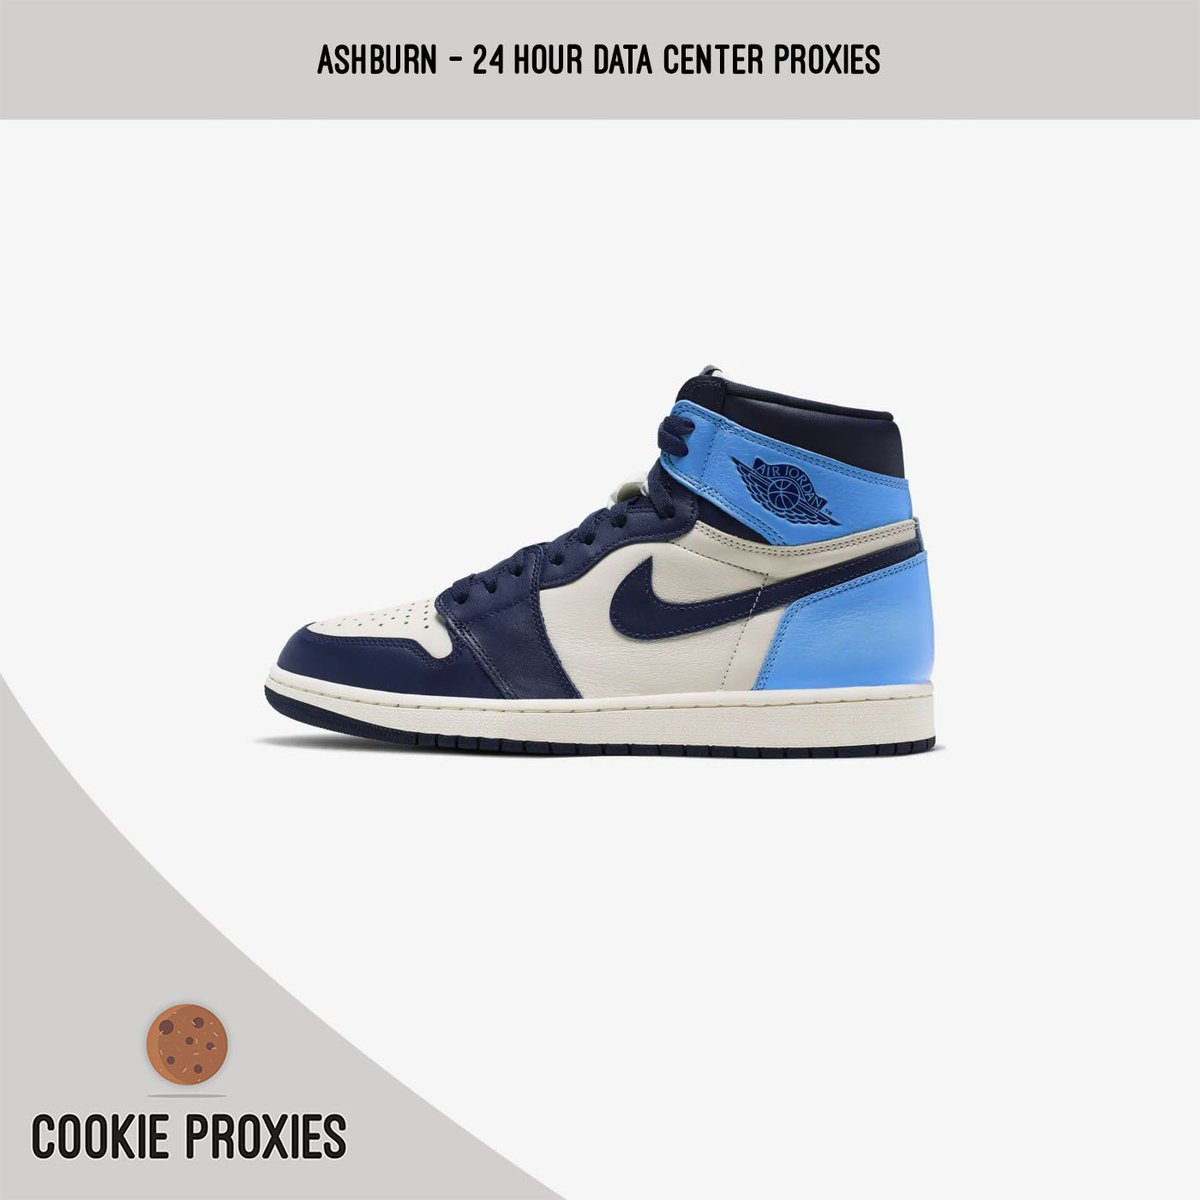 24 Hour AJ1 Obsidian Ashburn Data Center Proxies   Link:  http:// bit.ly/2Zpms8m      BIG GIVEAWAY  WIN 500 24 Hour DC Proxies  (50 Each, 10 Winners)   Rules: RT  Tag 1 Friend   Instant Delivery Proxies:  http:// bit.ly/33rJCOK     (Weekly / Monthly / Residential GB Plans)<br>http://pic.twitter.com/i2B2MVnRMd